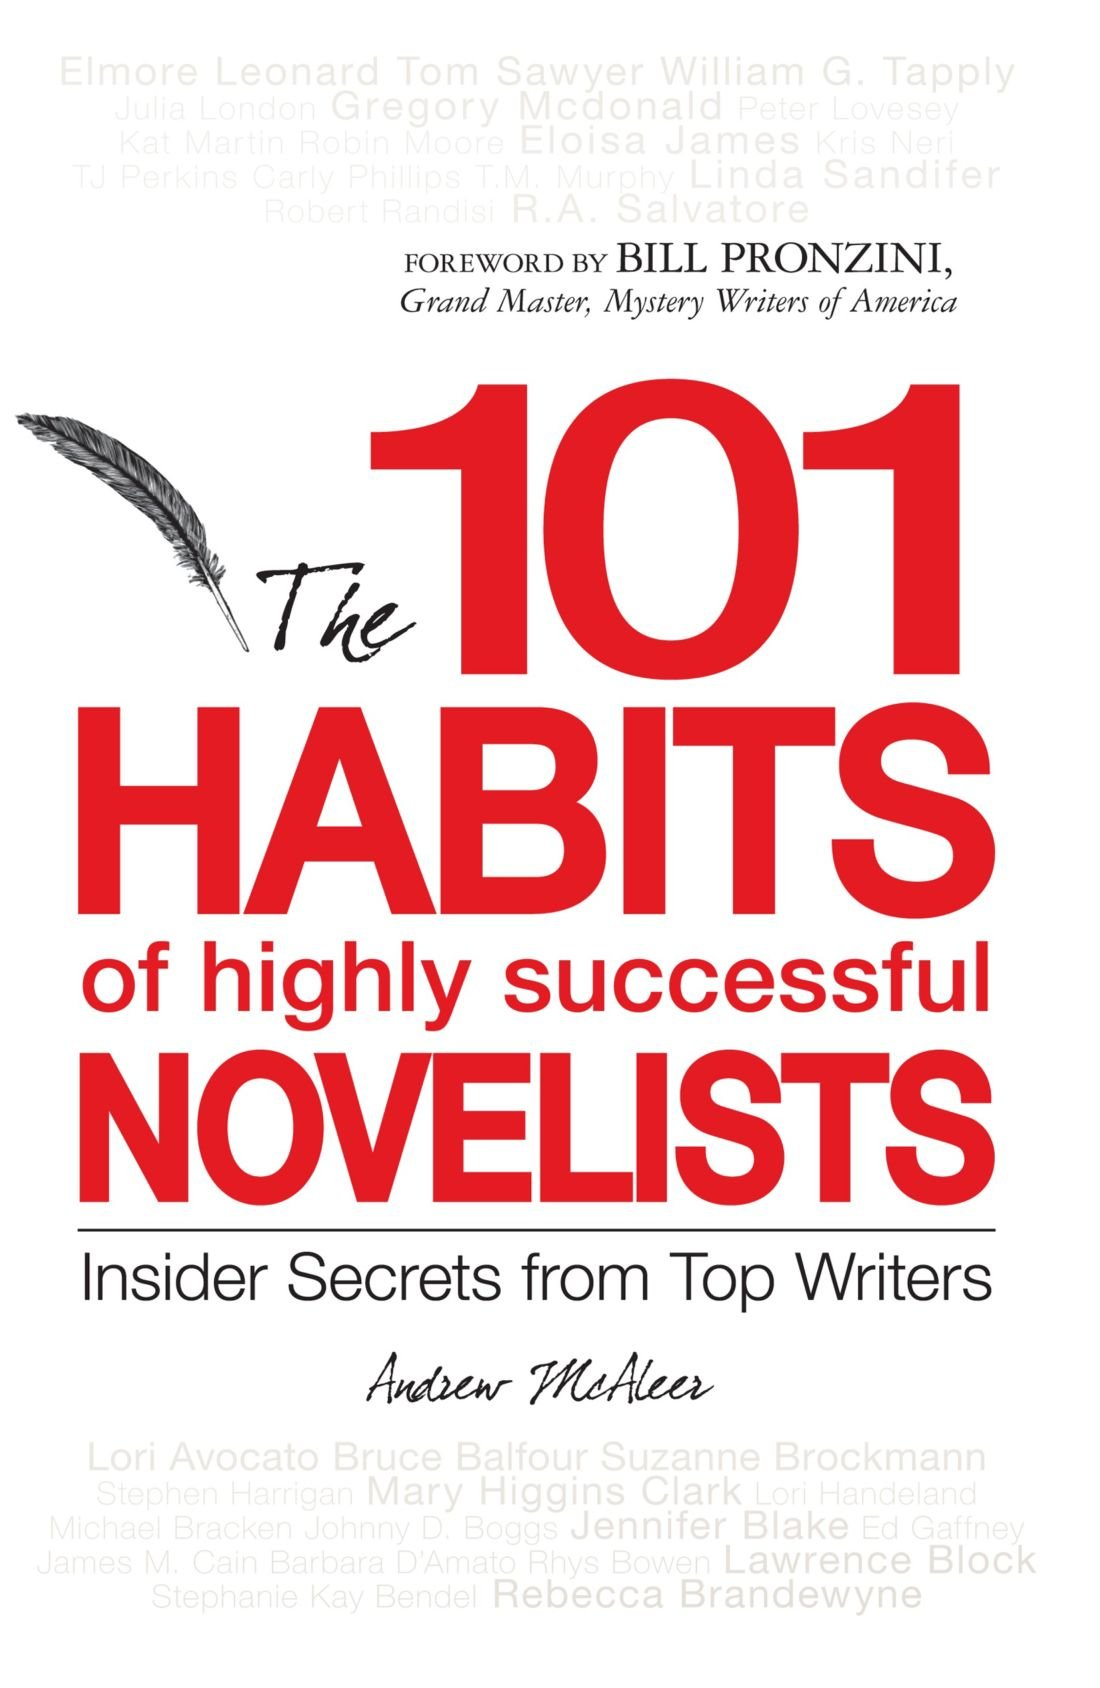 101 habits of highly successful novelists insider secrets from 101 habits of highly successful novelists insider secrets from top writers andrew mcaleer bill pronzini 0045079905894 com books